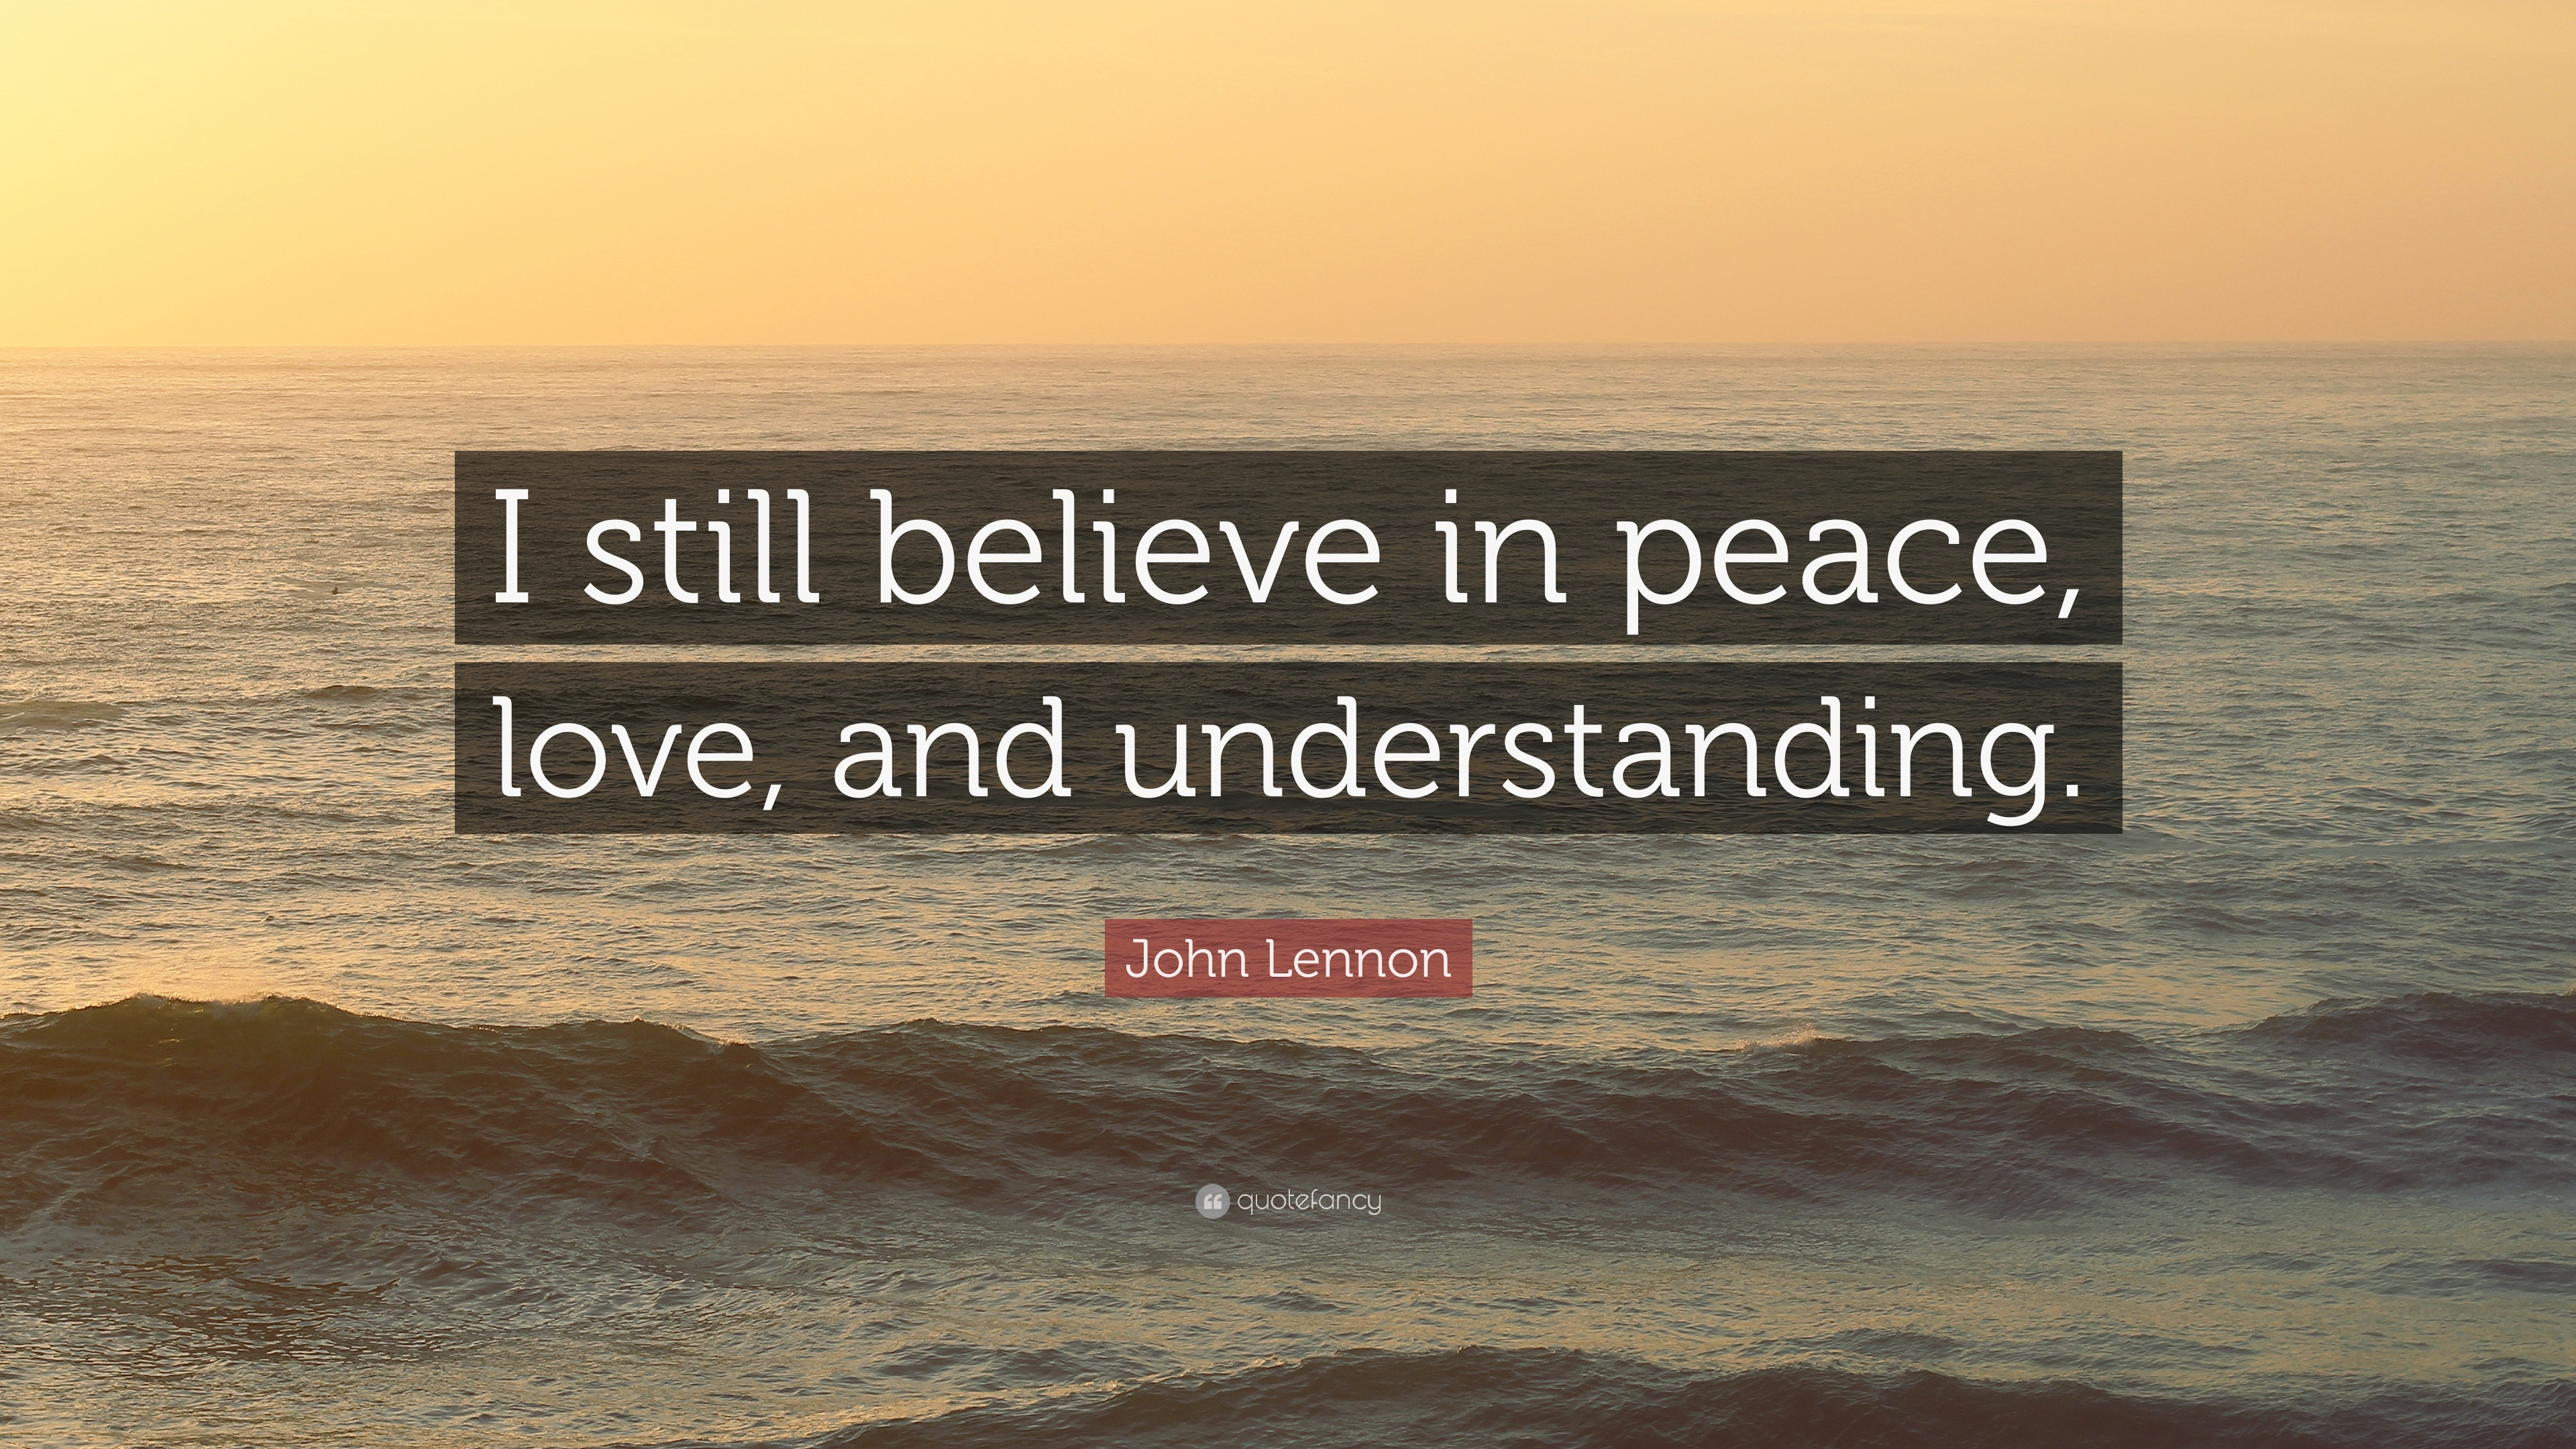 Charming John Lennon Quote: U201cI Still Believe In Peace, Love, And Understanding.